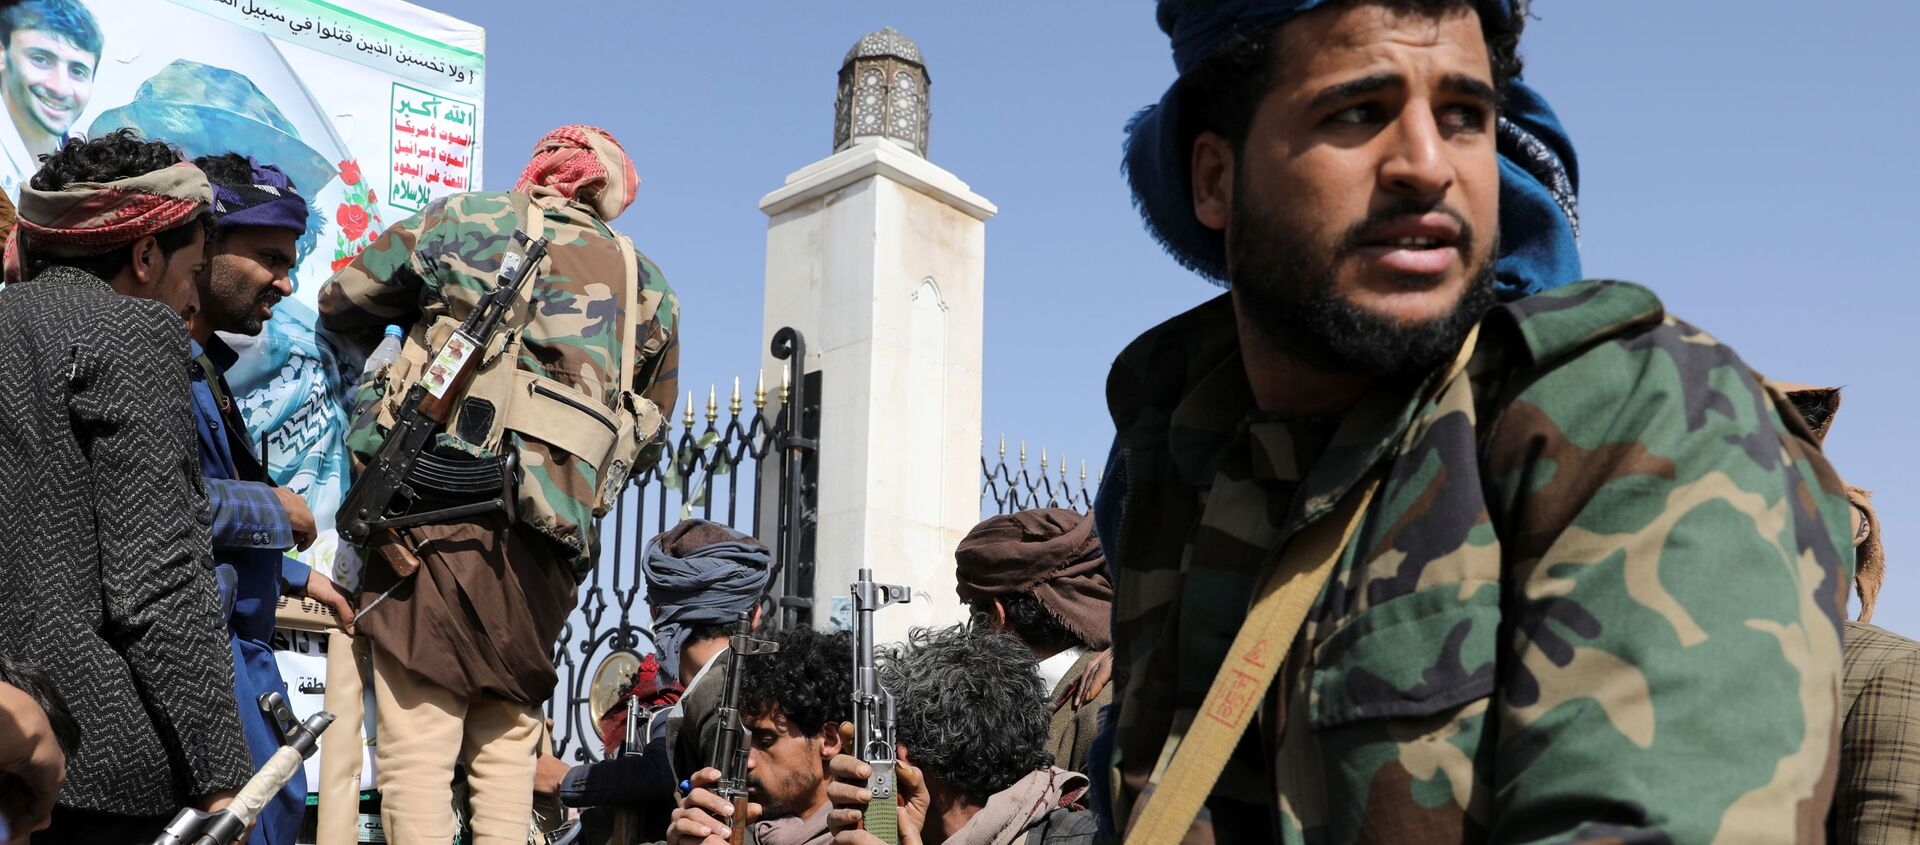 Armed Houthi followers sit next to a coffin of a Houthi fighter killed in recent fighting against government forces in Yemen's oil-rich province of Marib, during a funeral procession in Sanaa, Yemen February 20, 2021. - Sputnik International, 1920, 20.05.2021